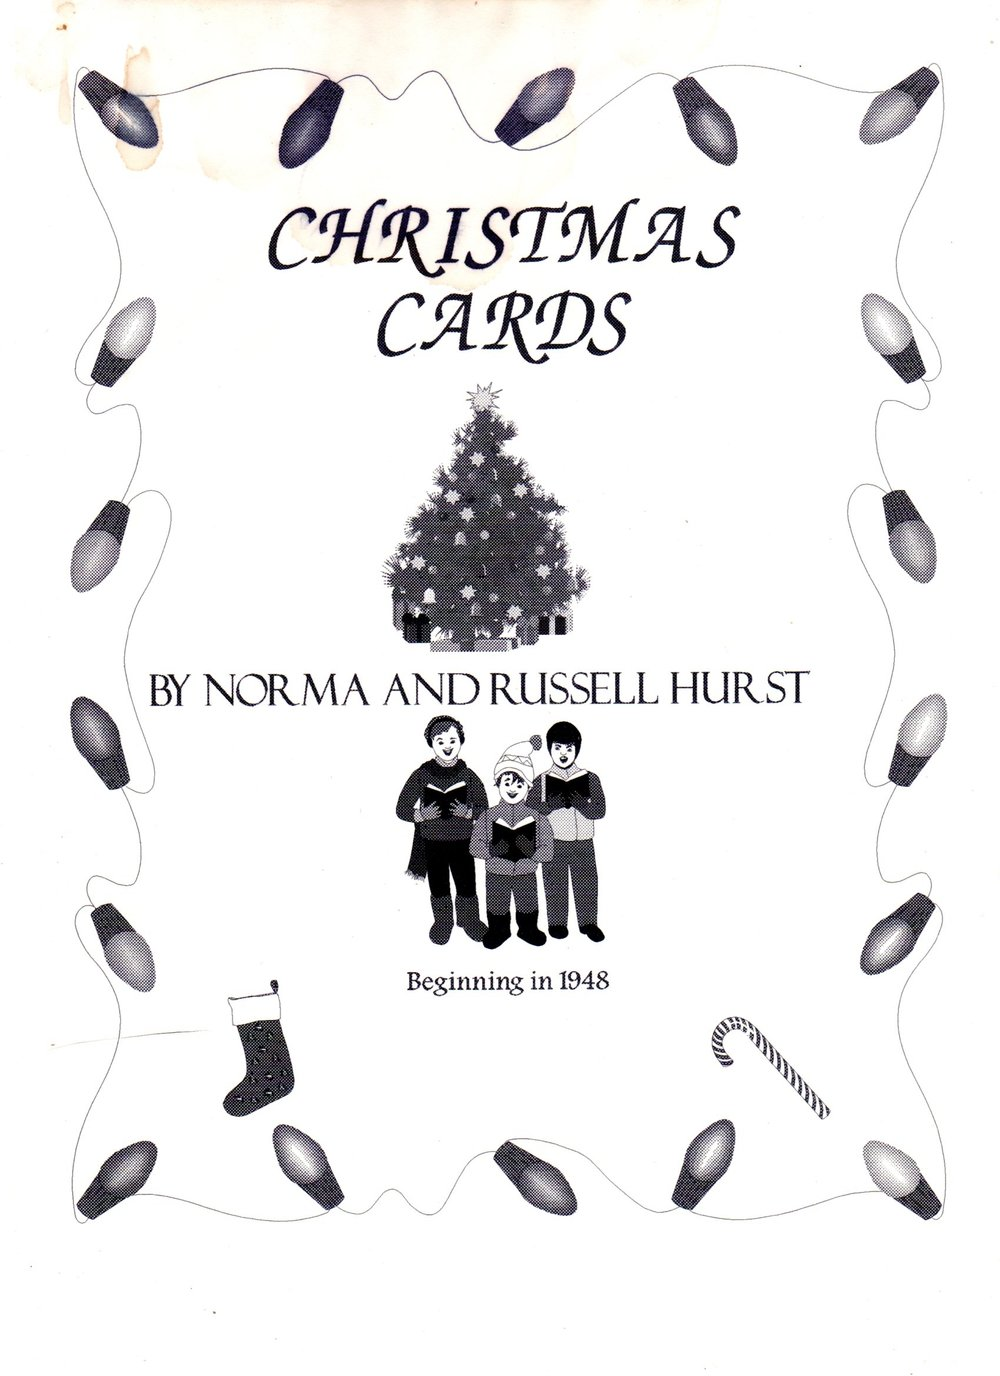 Russell Hurst Family Christmas Cards 1948-1972